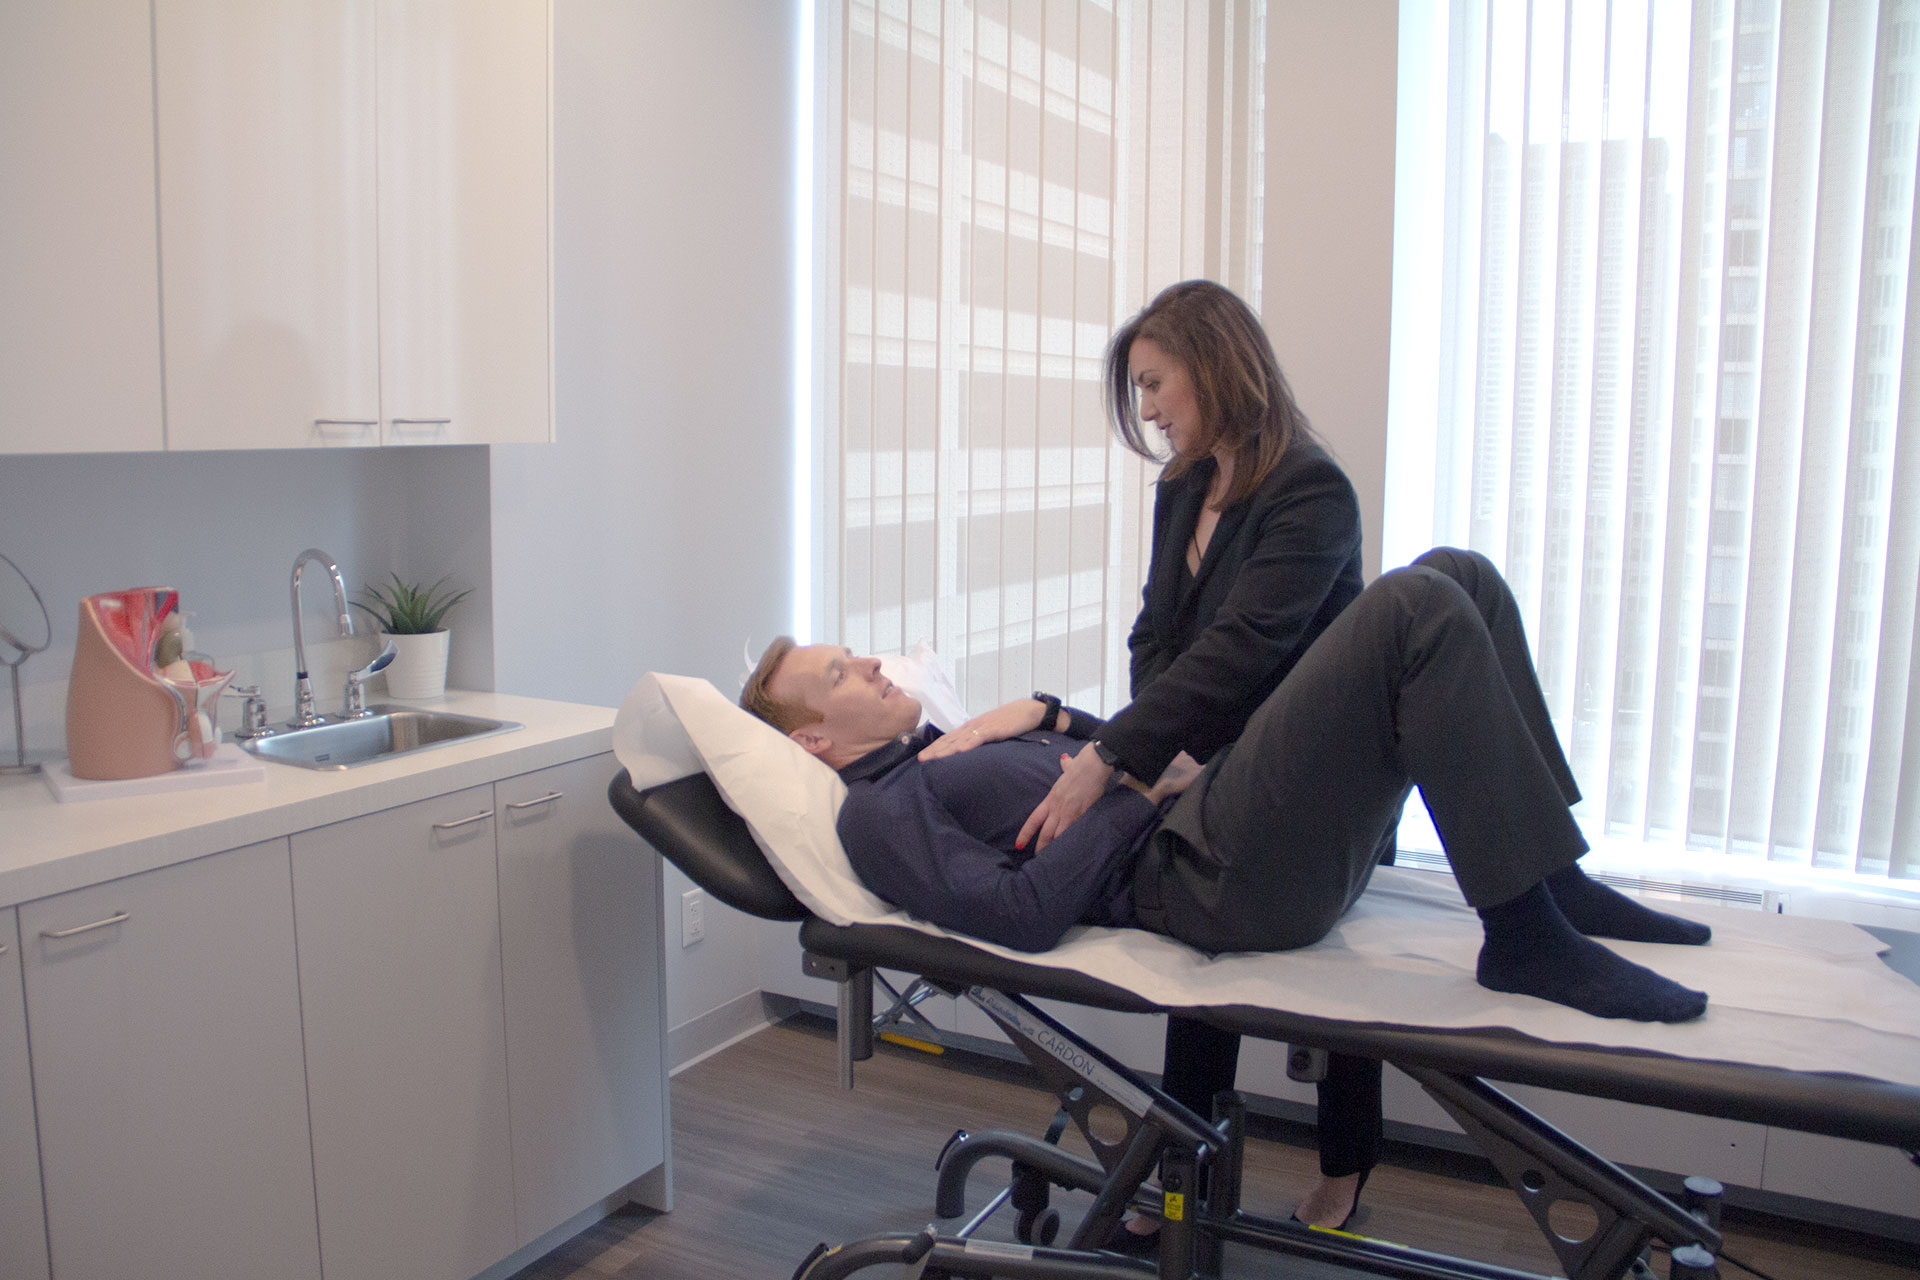 Pelvic-floor-pain-treatments-by-physiotherapists-in-toronto